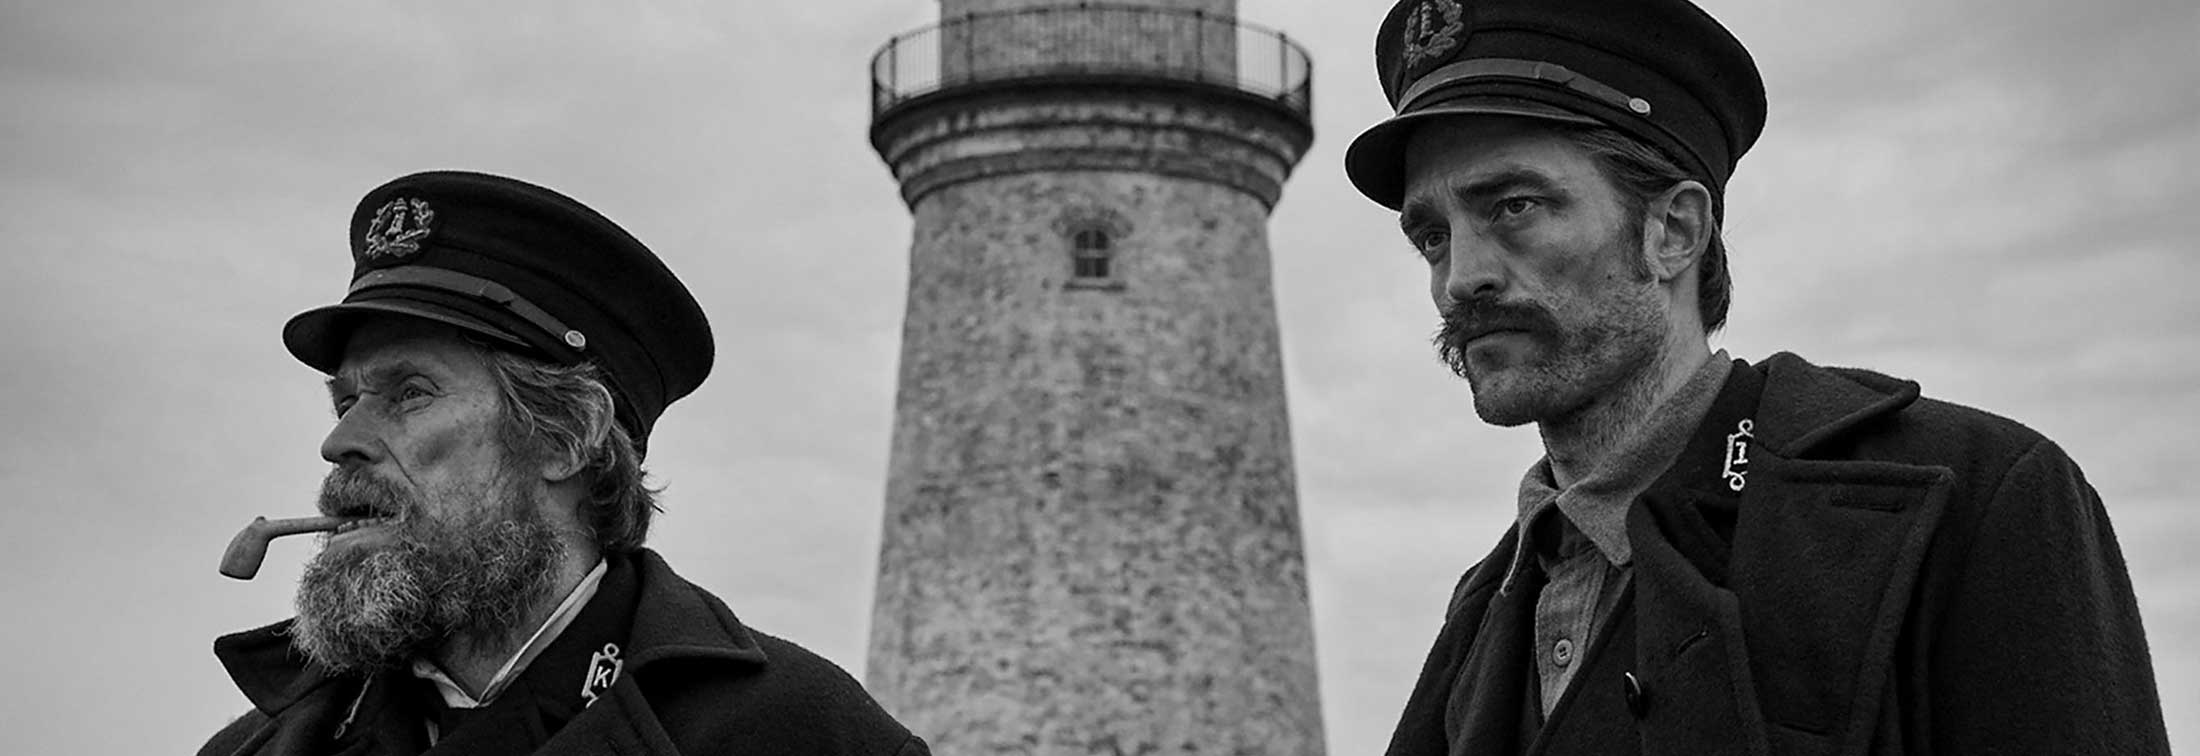 The Lighthouse - Robert Eggers delivers another staggering American classic